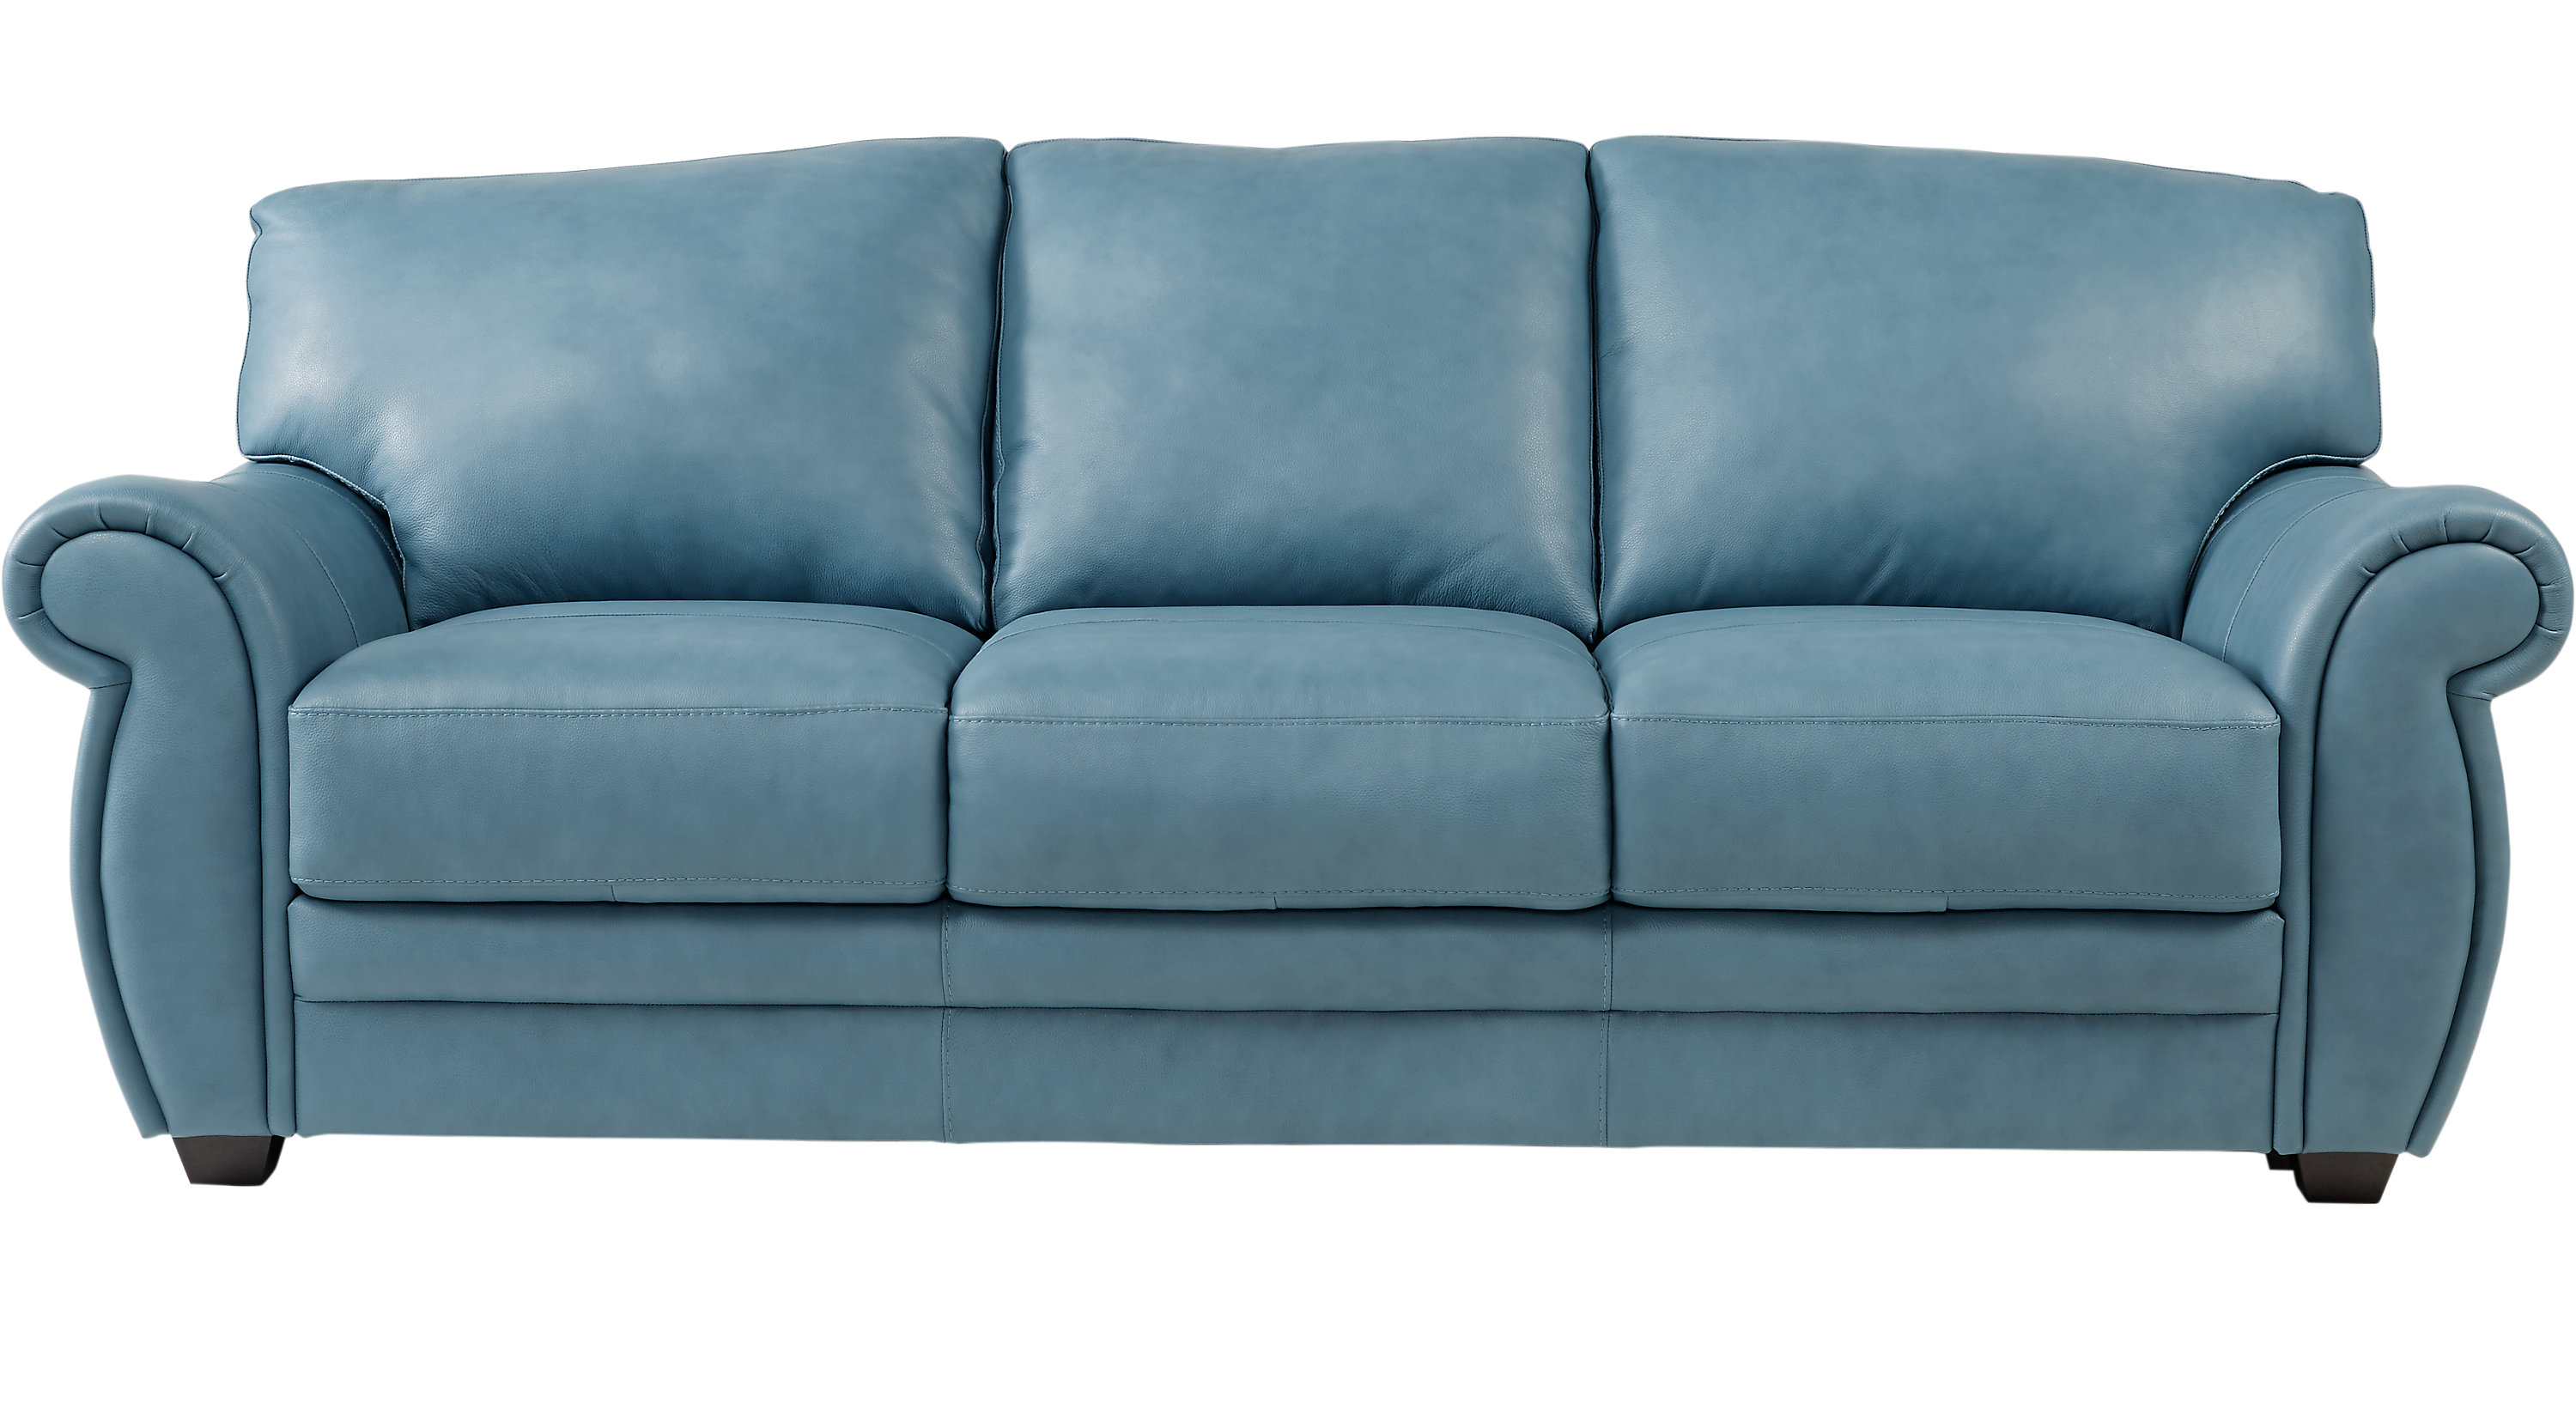 1 Martello Blue Leather Sofa Classic Transitional